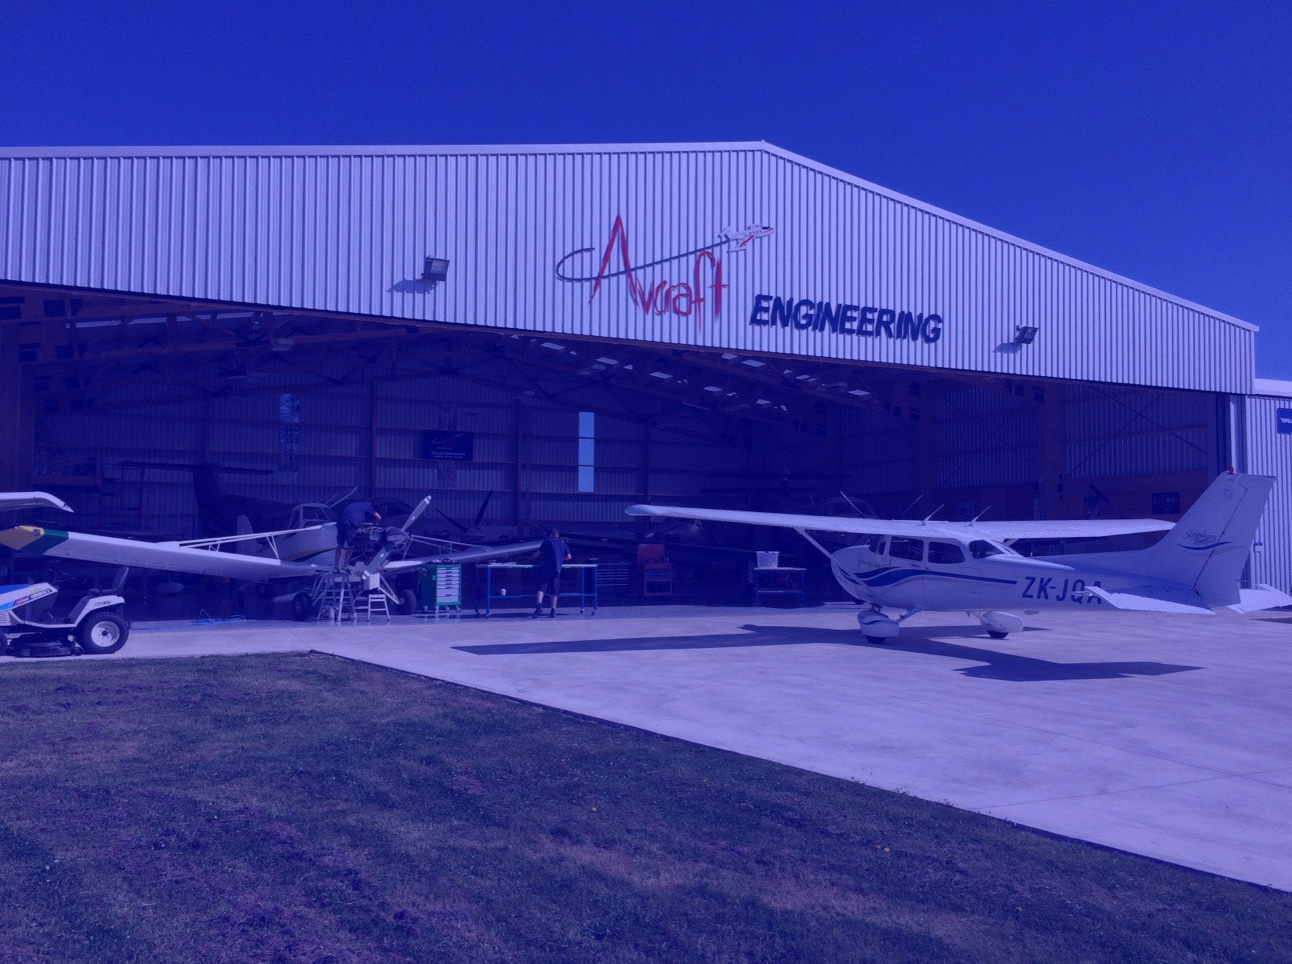 Avcraft Engineering NZ Ltd